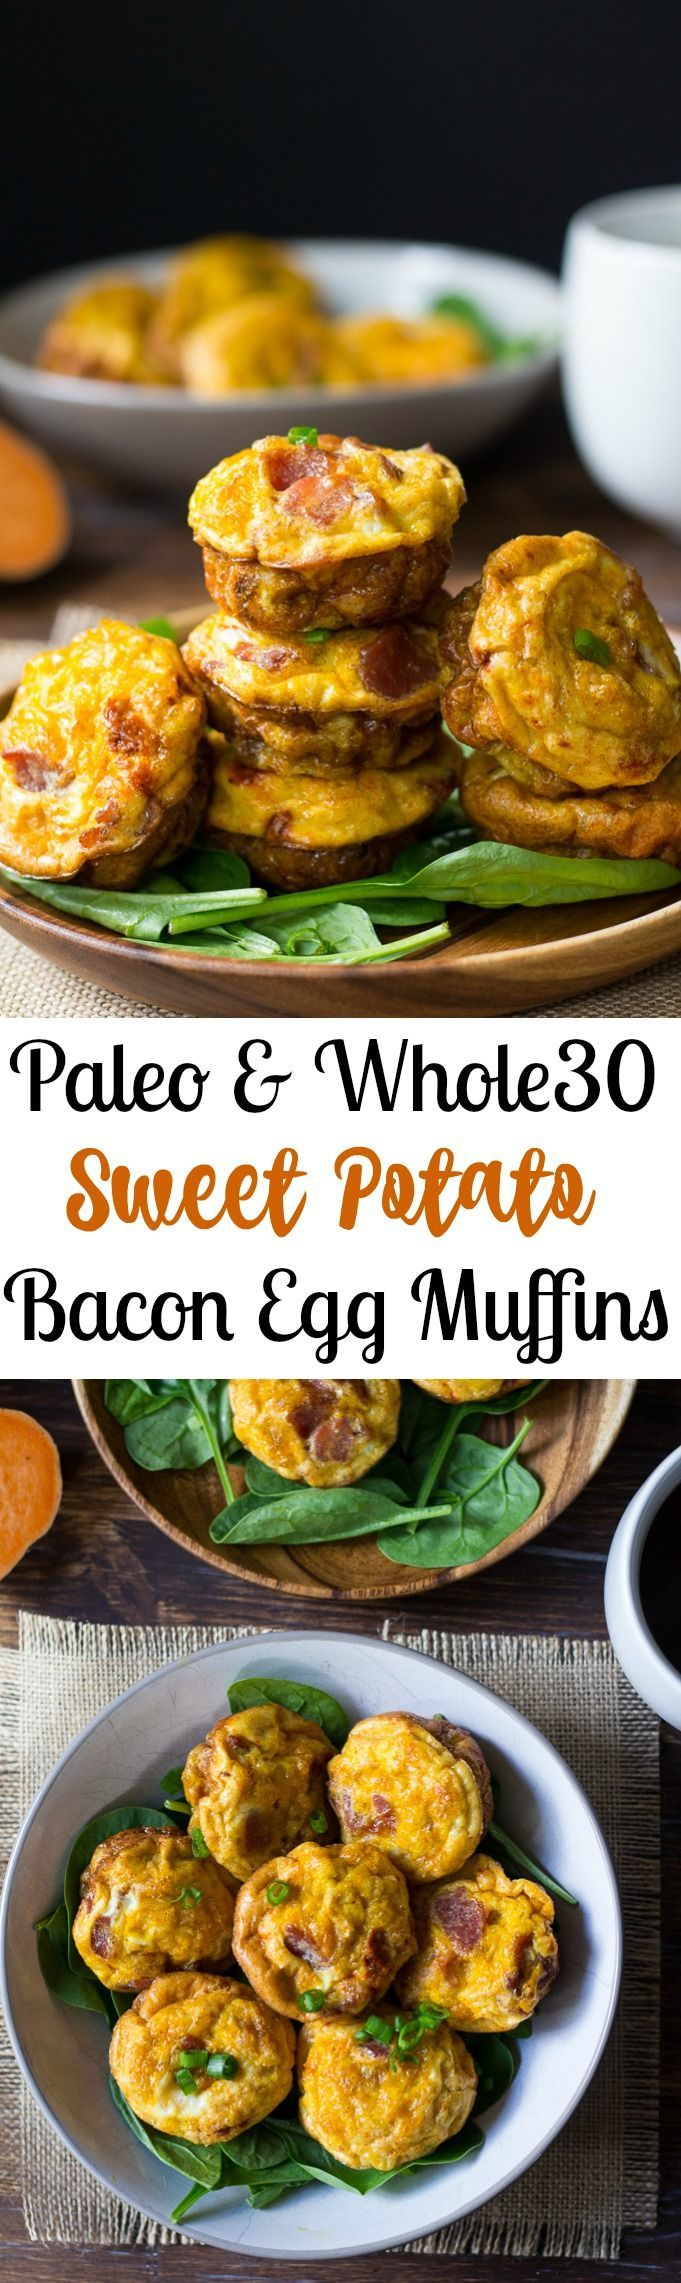 Paleo and Whole30 friendly Sweet Potato Bacon Egg Muffins that you can make…